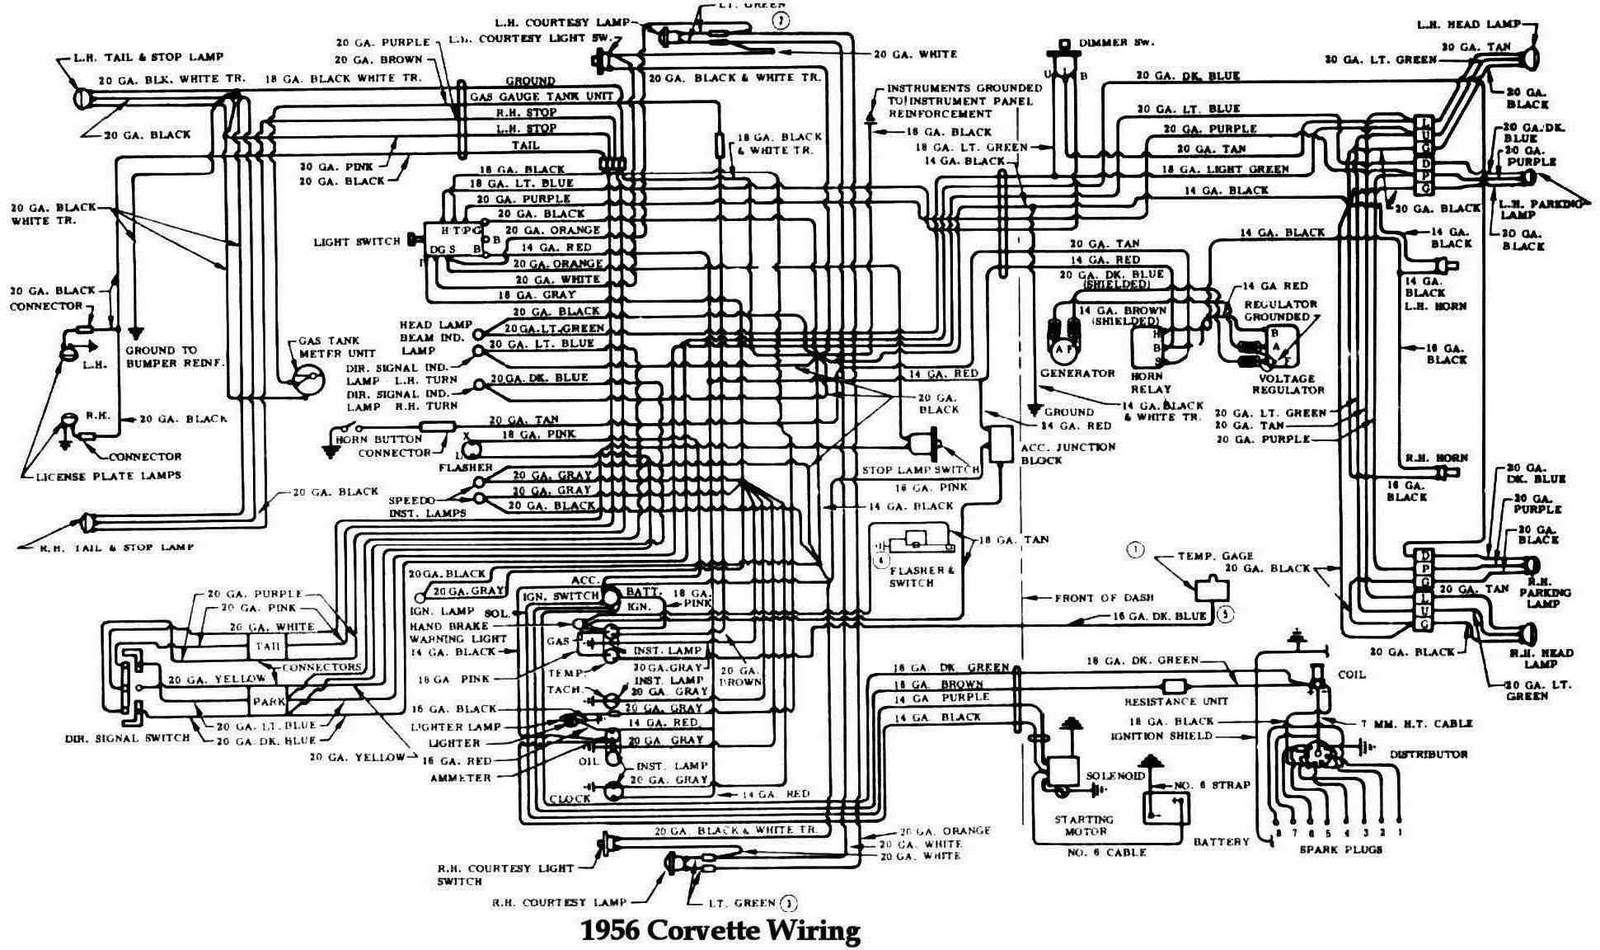 DIAGRAM] 63 Corvette Wiring Diagram FULL Version HD Quality Wiring Diagram  - DIAGRAMHS.CELACAVIAMODASOLI.ITDiagram Database - celacaviamodasoli.it